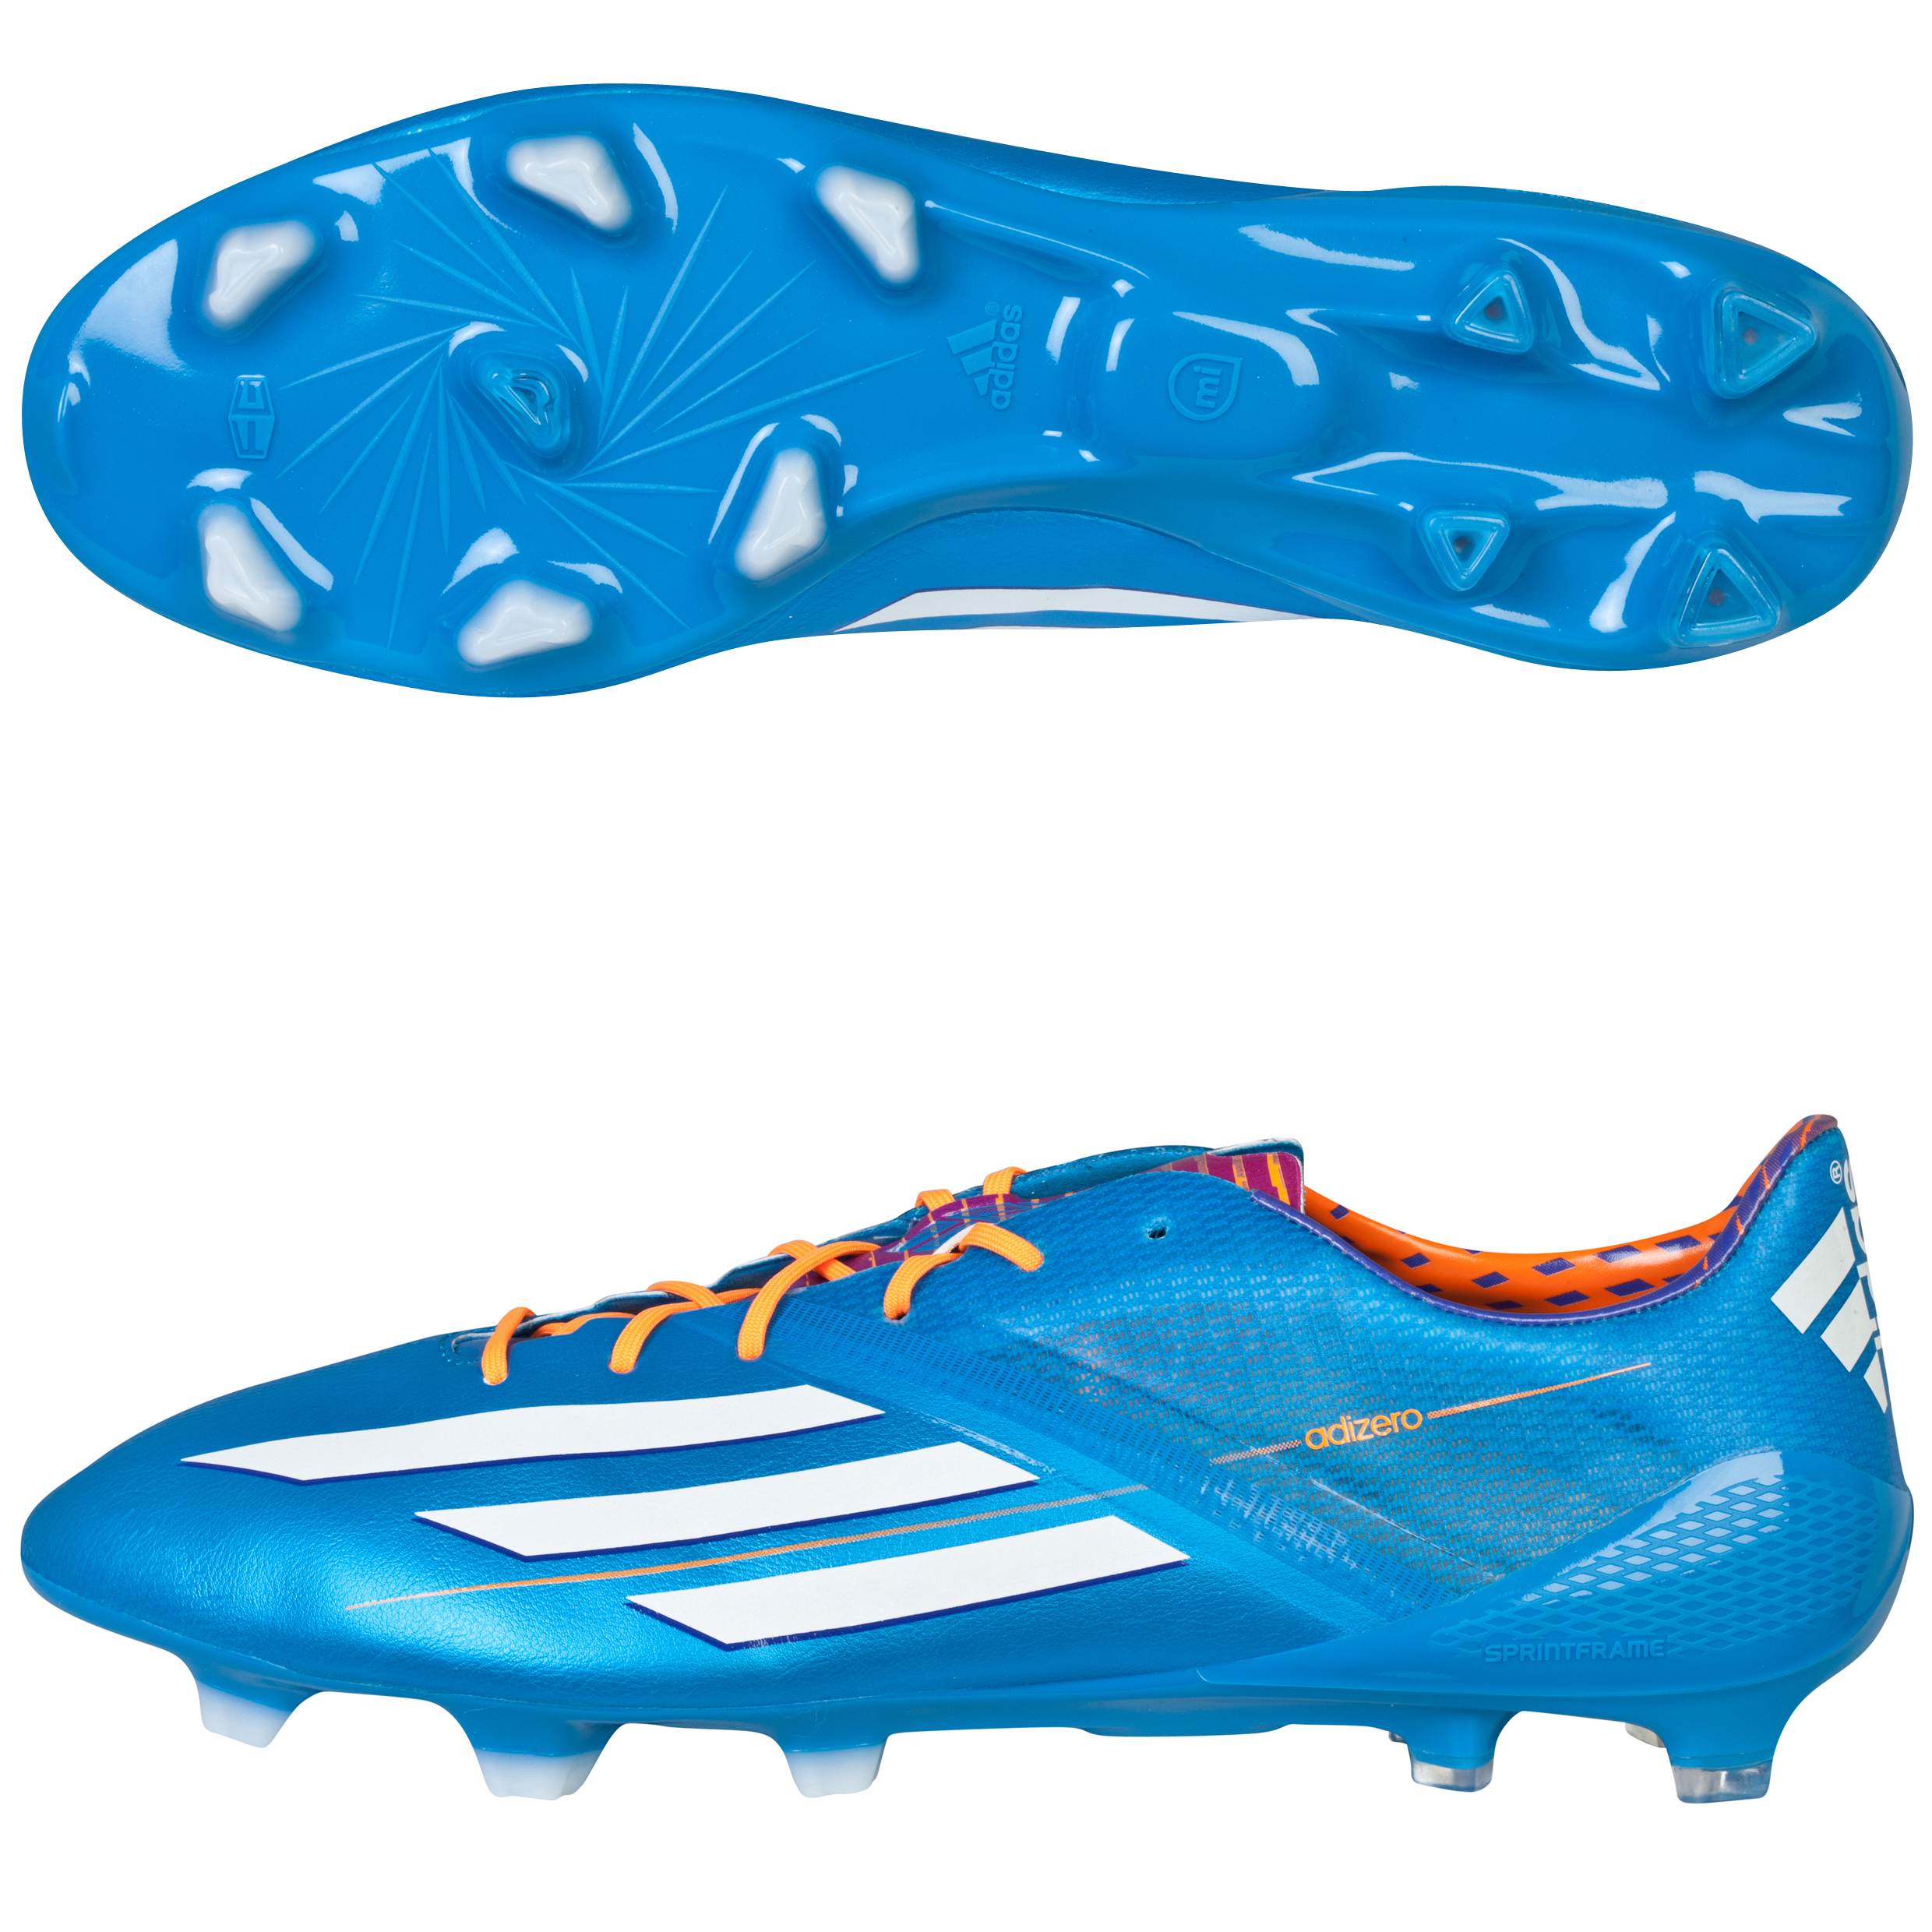 Adidas F50 adiZero TRX Firm Ground Football Boots Blue